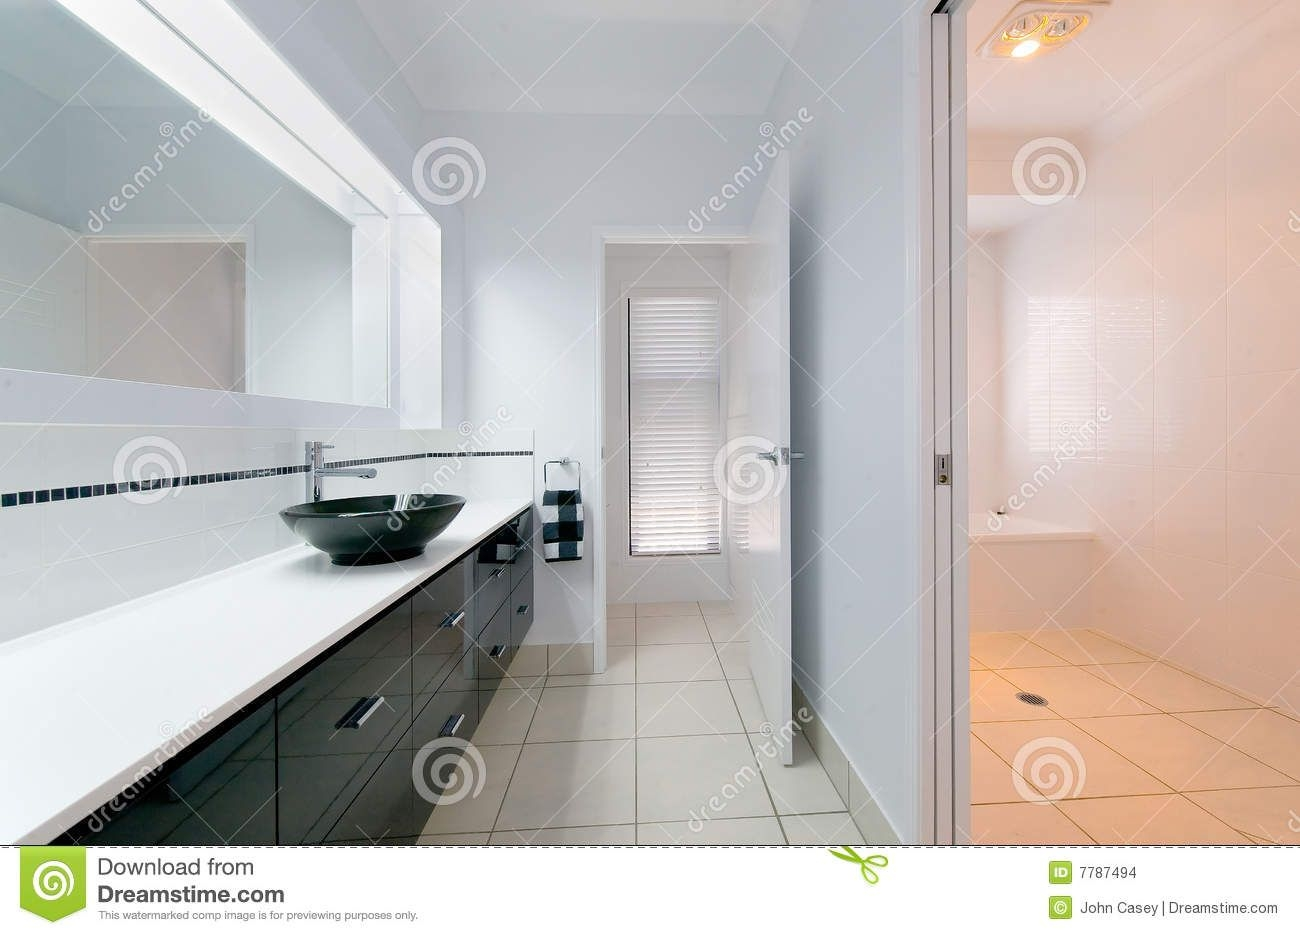 Modern Bathroom Interior Stock Photo Image Of Clean Decorator  7787494